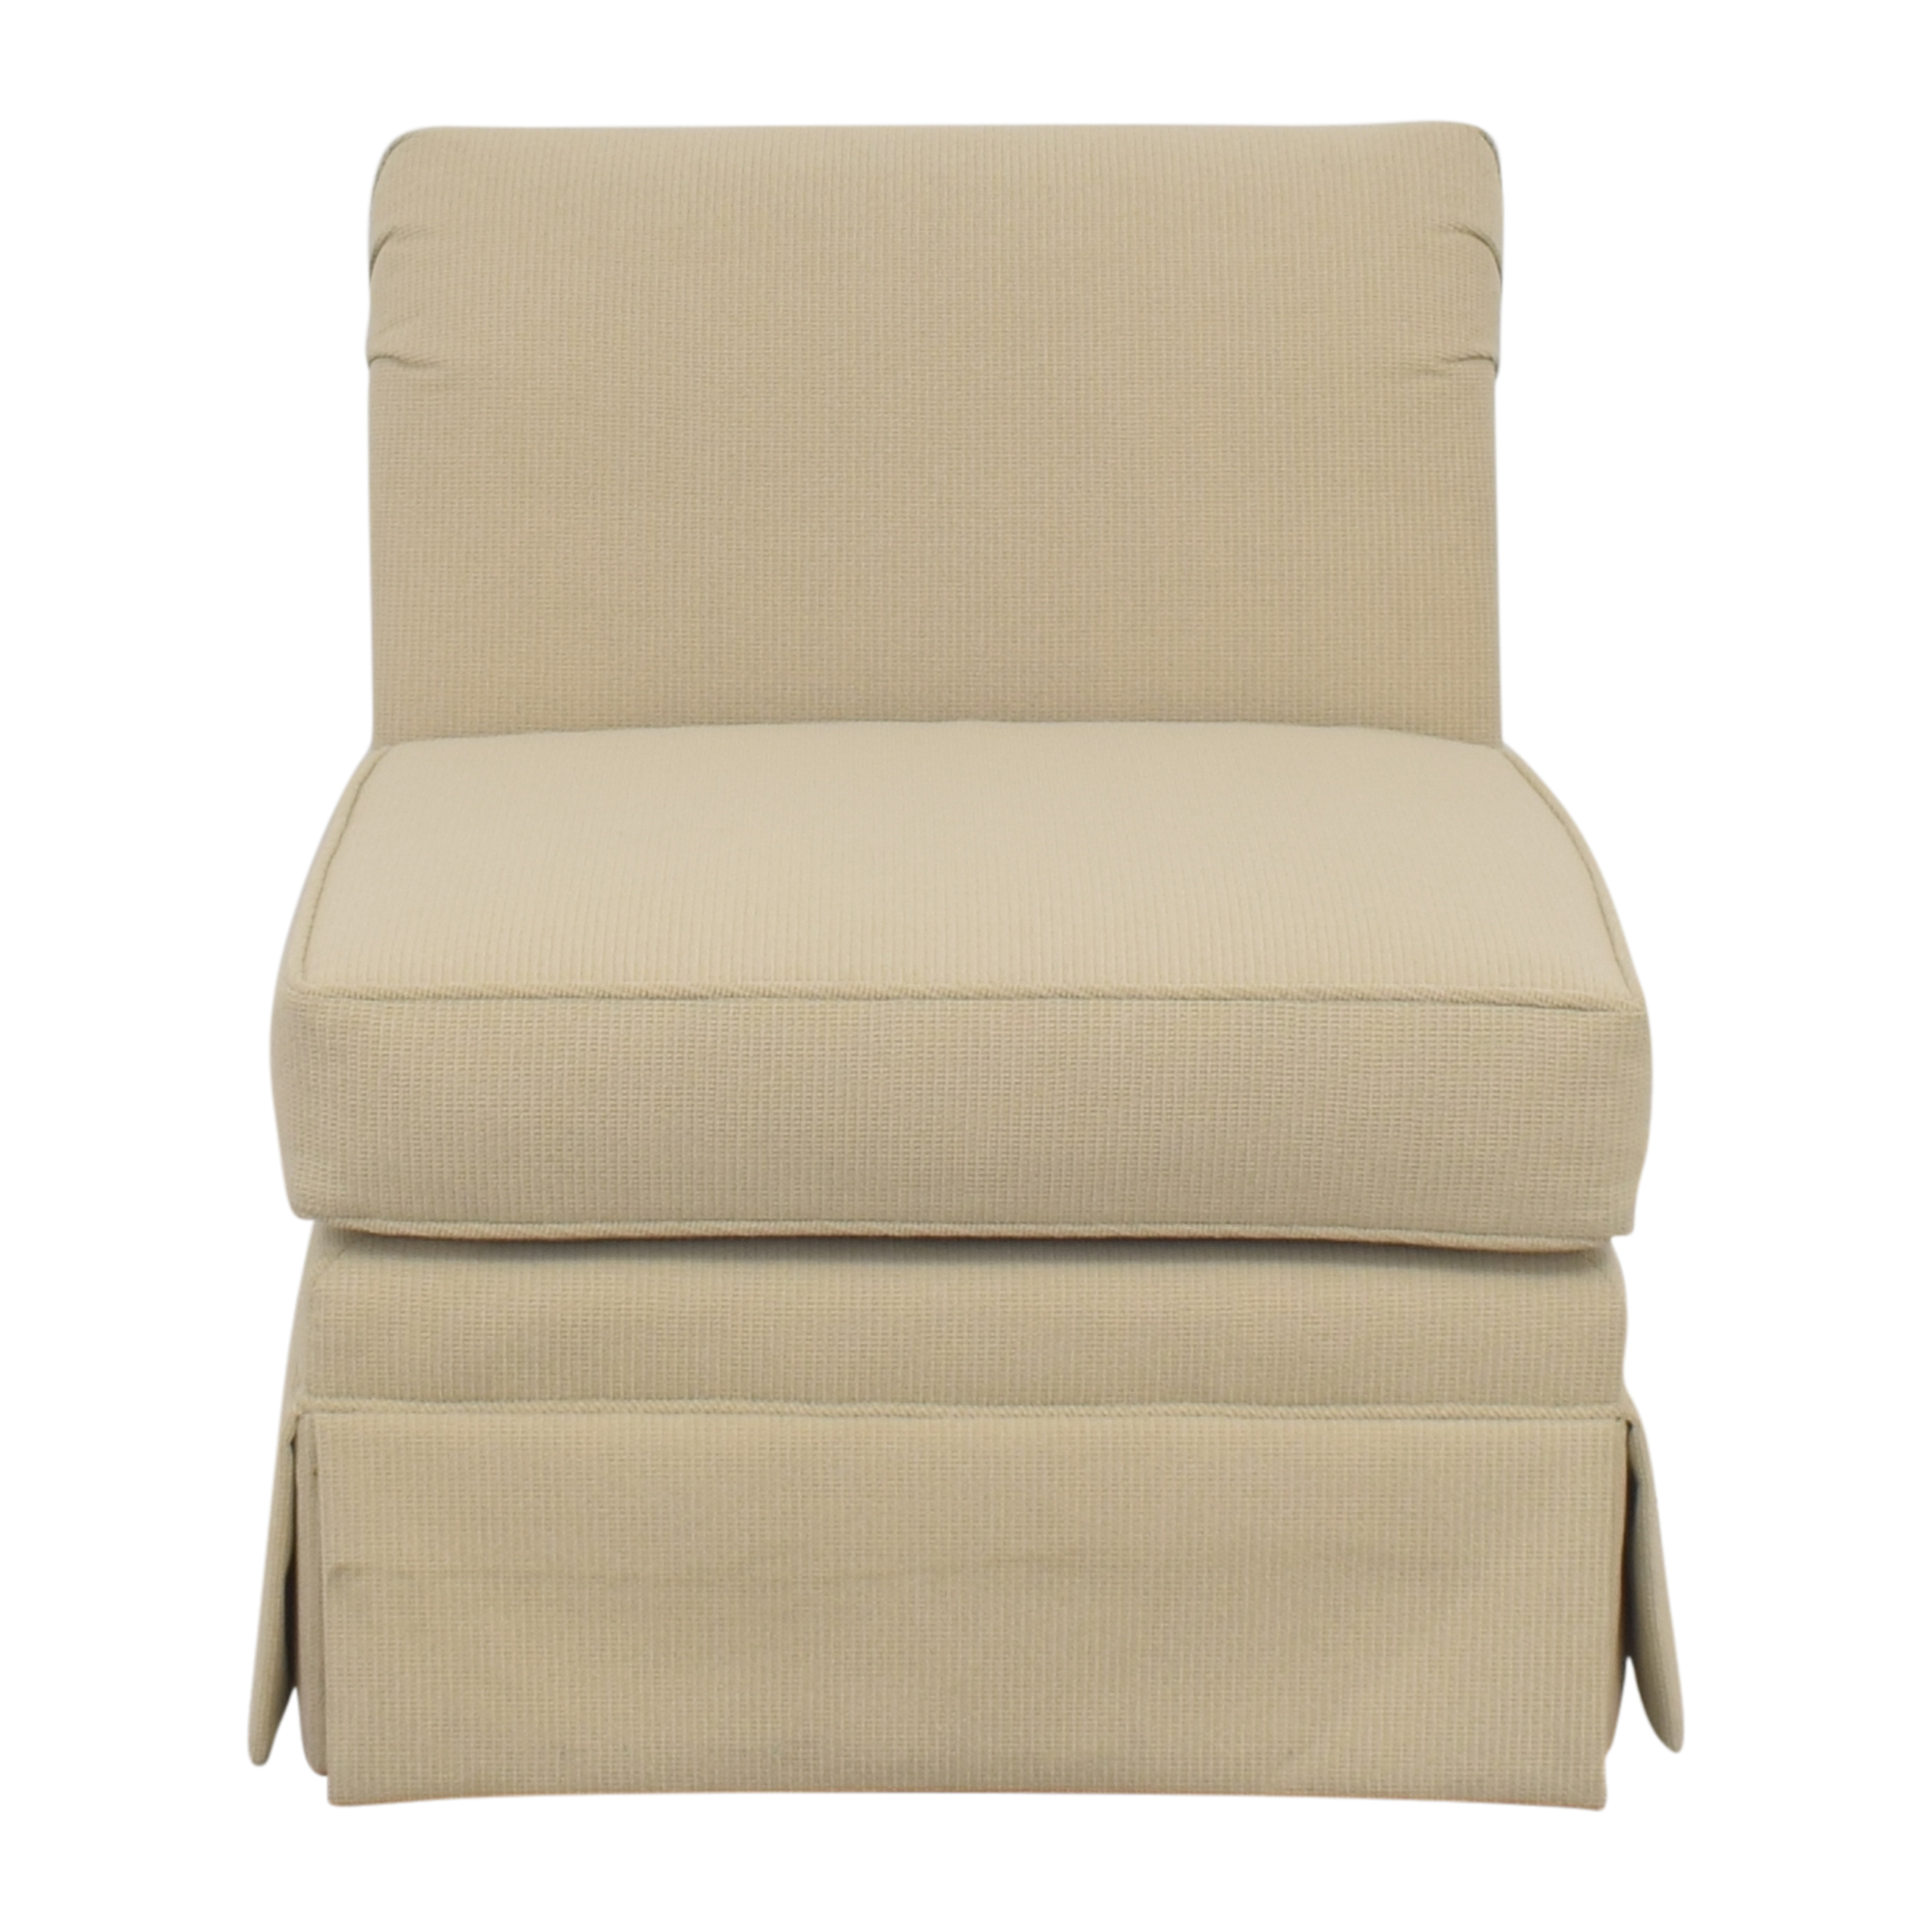 buy Hickory Chair Hickory Chair Slipper Chair online